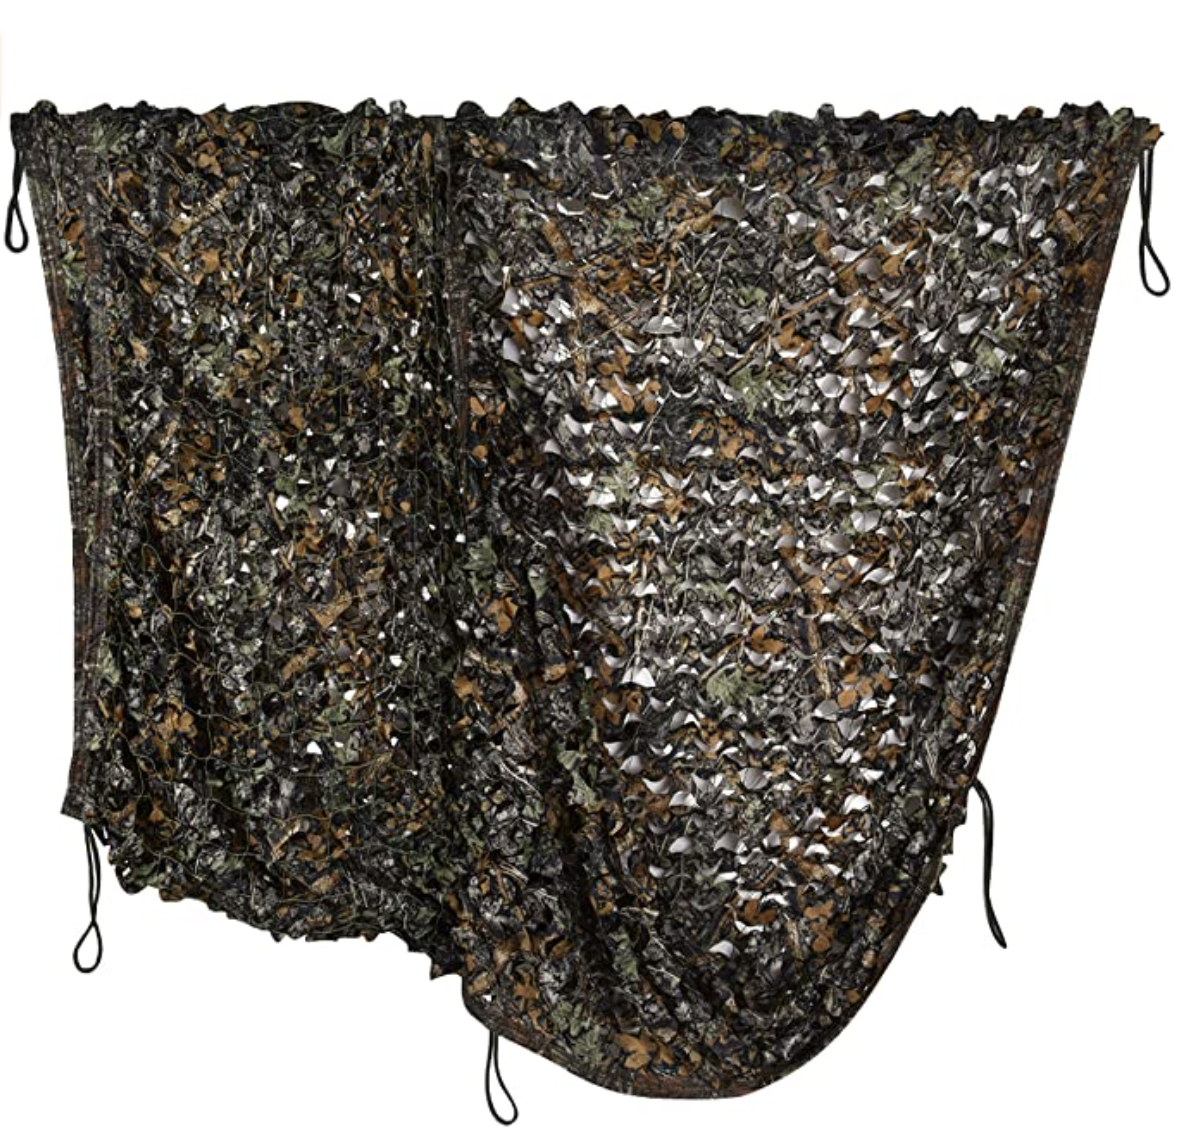 iunio Hunting Blind, Camo Netting, Camouflage Net, Bulk Roll, Mesh, Cover for Sun Shade, Camping, Outdoor